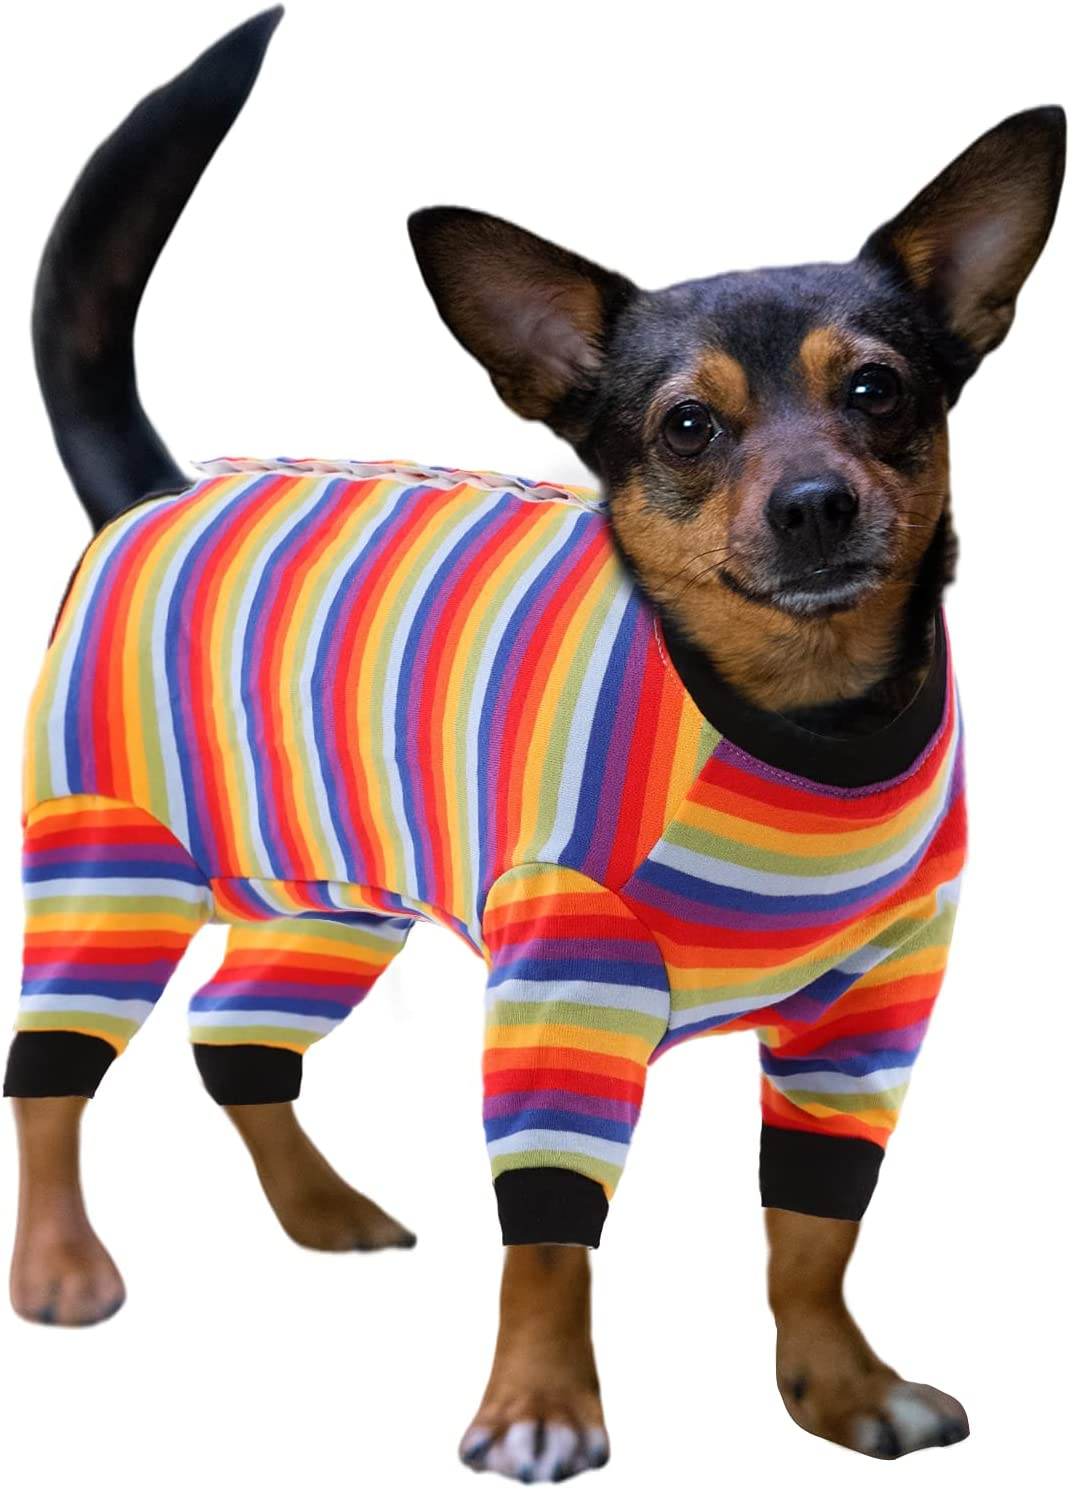 Gorsbark Recovery Suit for Dog Fort Challenge the lowest price Worth Mall Surgery Neutering Reco Cat after